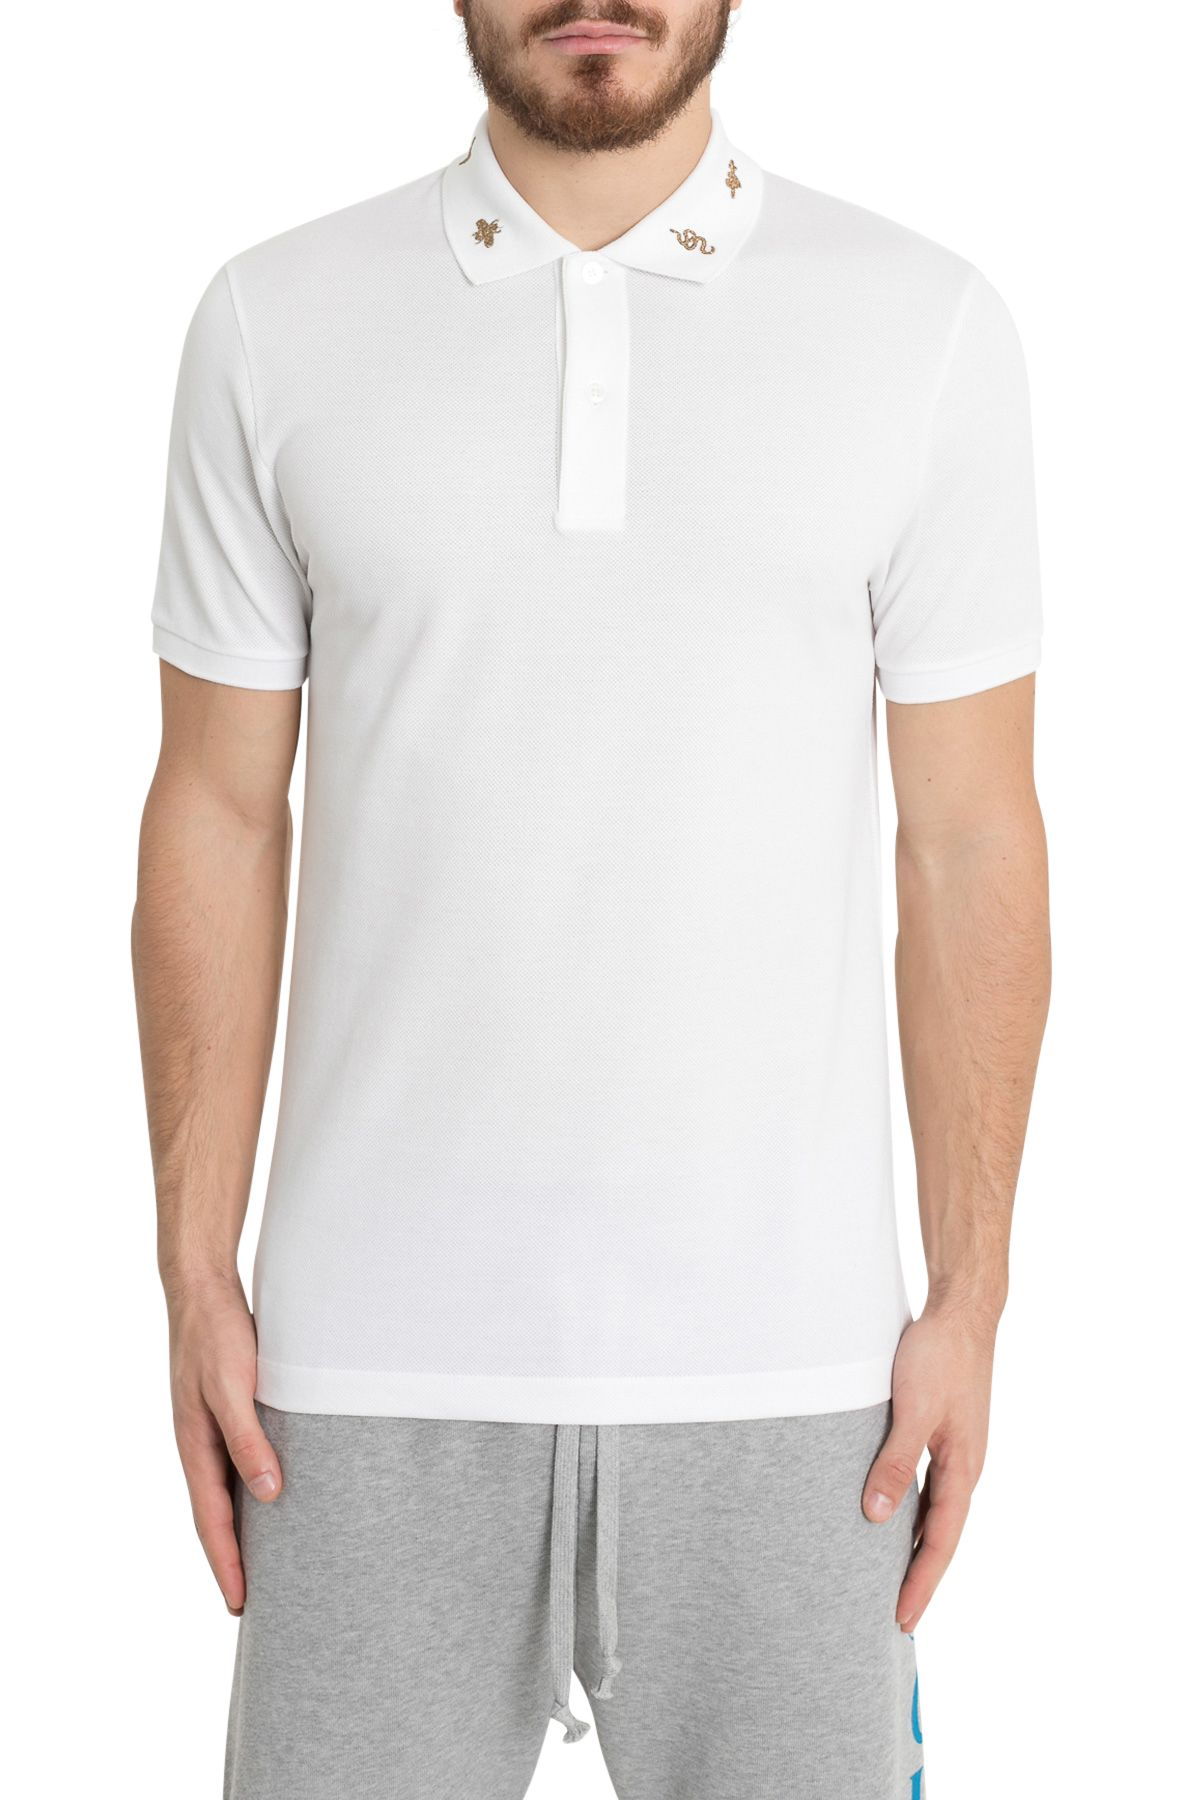 Gucci Embroidered Collar Polo Shirt In Bianco Modesens